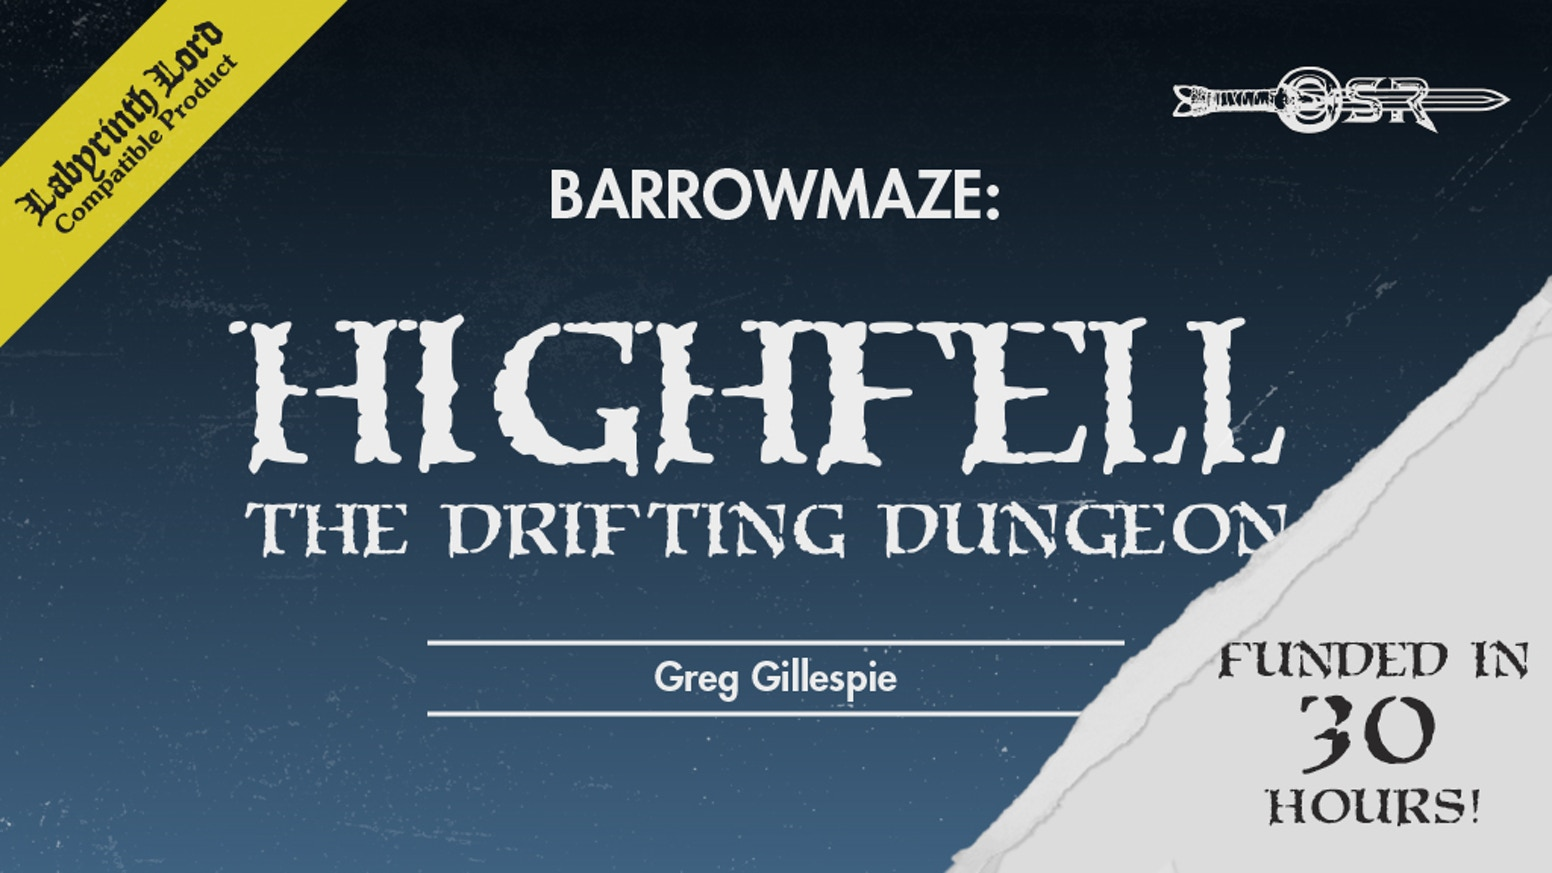 Barrowmaze: HighFell - The Drifting Dungeon is the top crowdfunding project launched today. Barrowmaze: HighFell - The Drifting Dungeon raised over $26629 from 307 backers. Other top projects include Graphic Novel : Justin Case and the Closet Monster, Where are my shoes? A personalized children's picture book!, Genesis - An Independent Feature Length Movie...